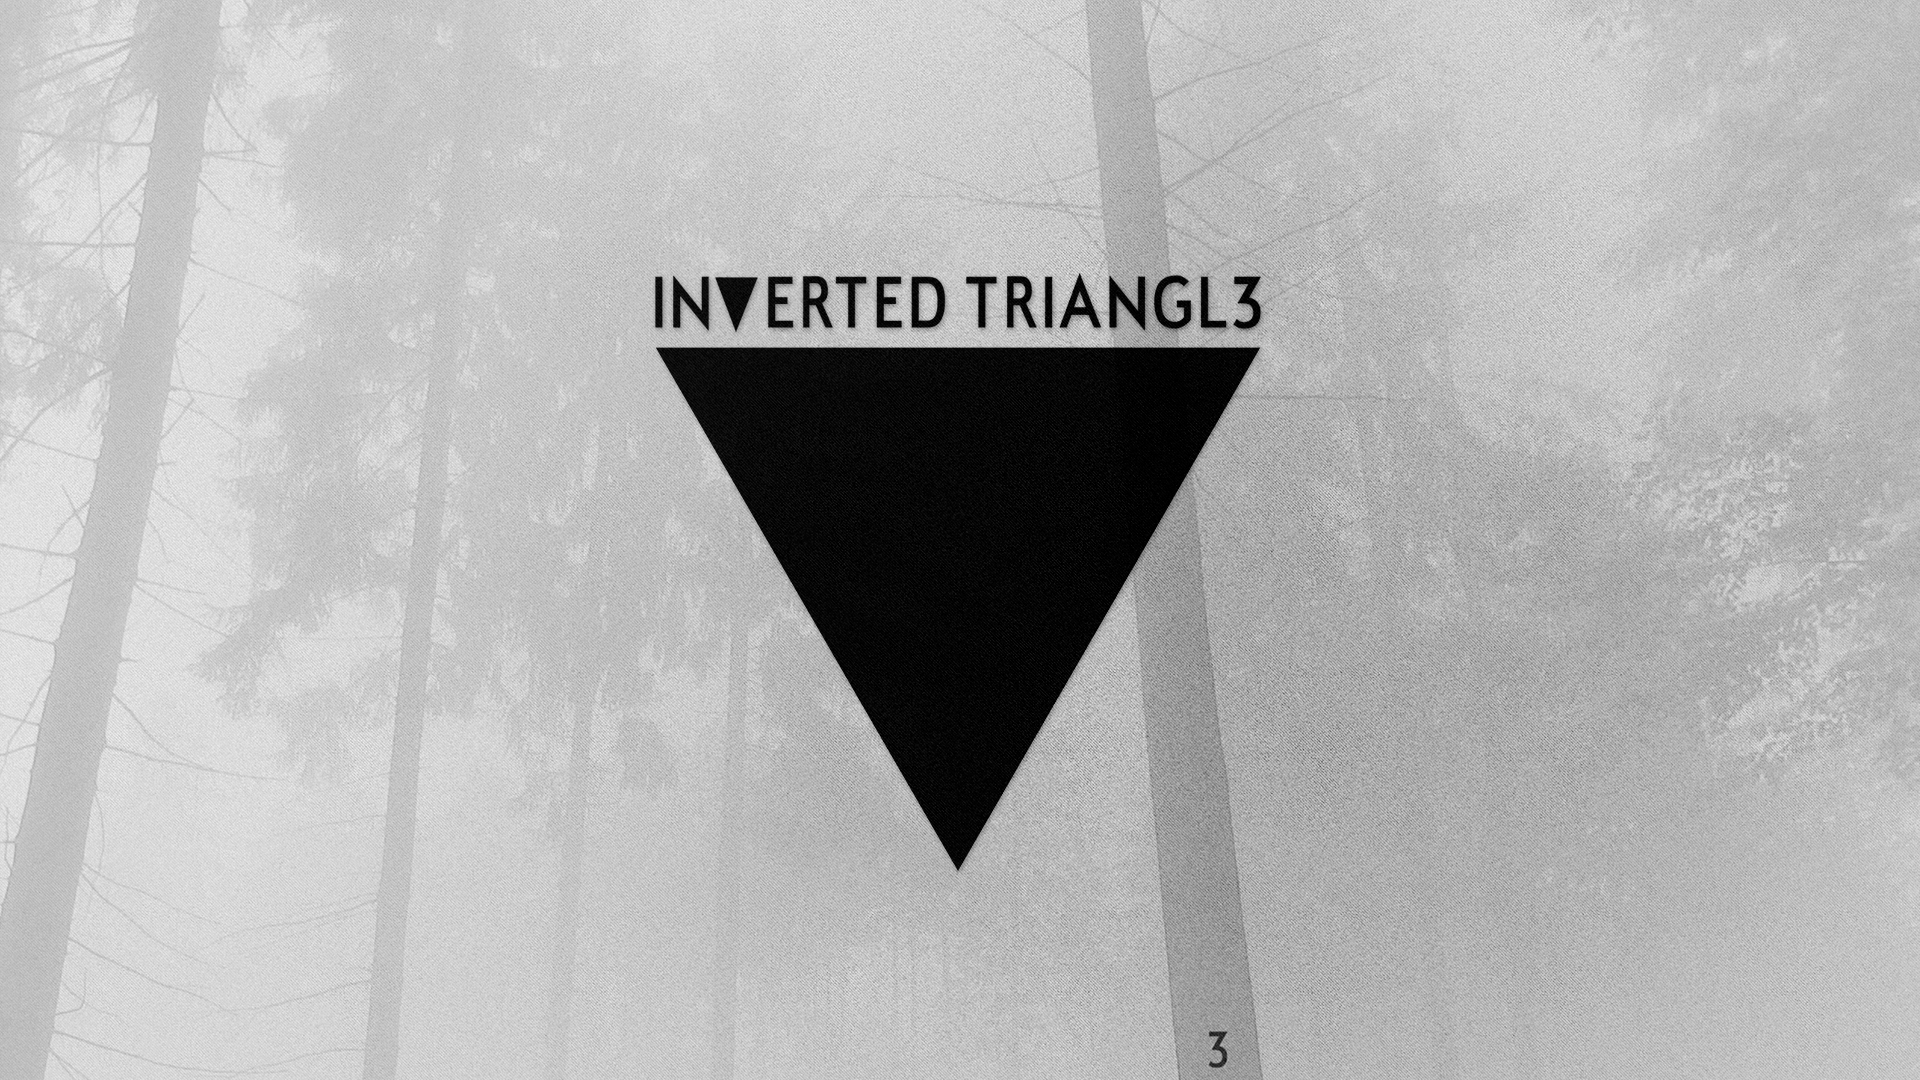 Hipsters Inverted Triangel Wallpaper | Wallpup.com Inverted Triangle Wallpaper